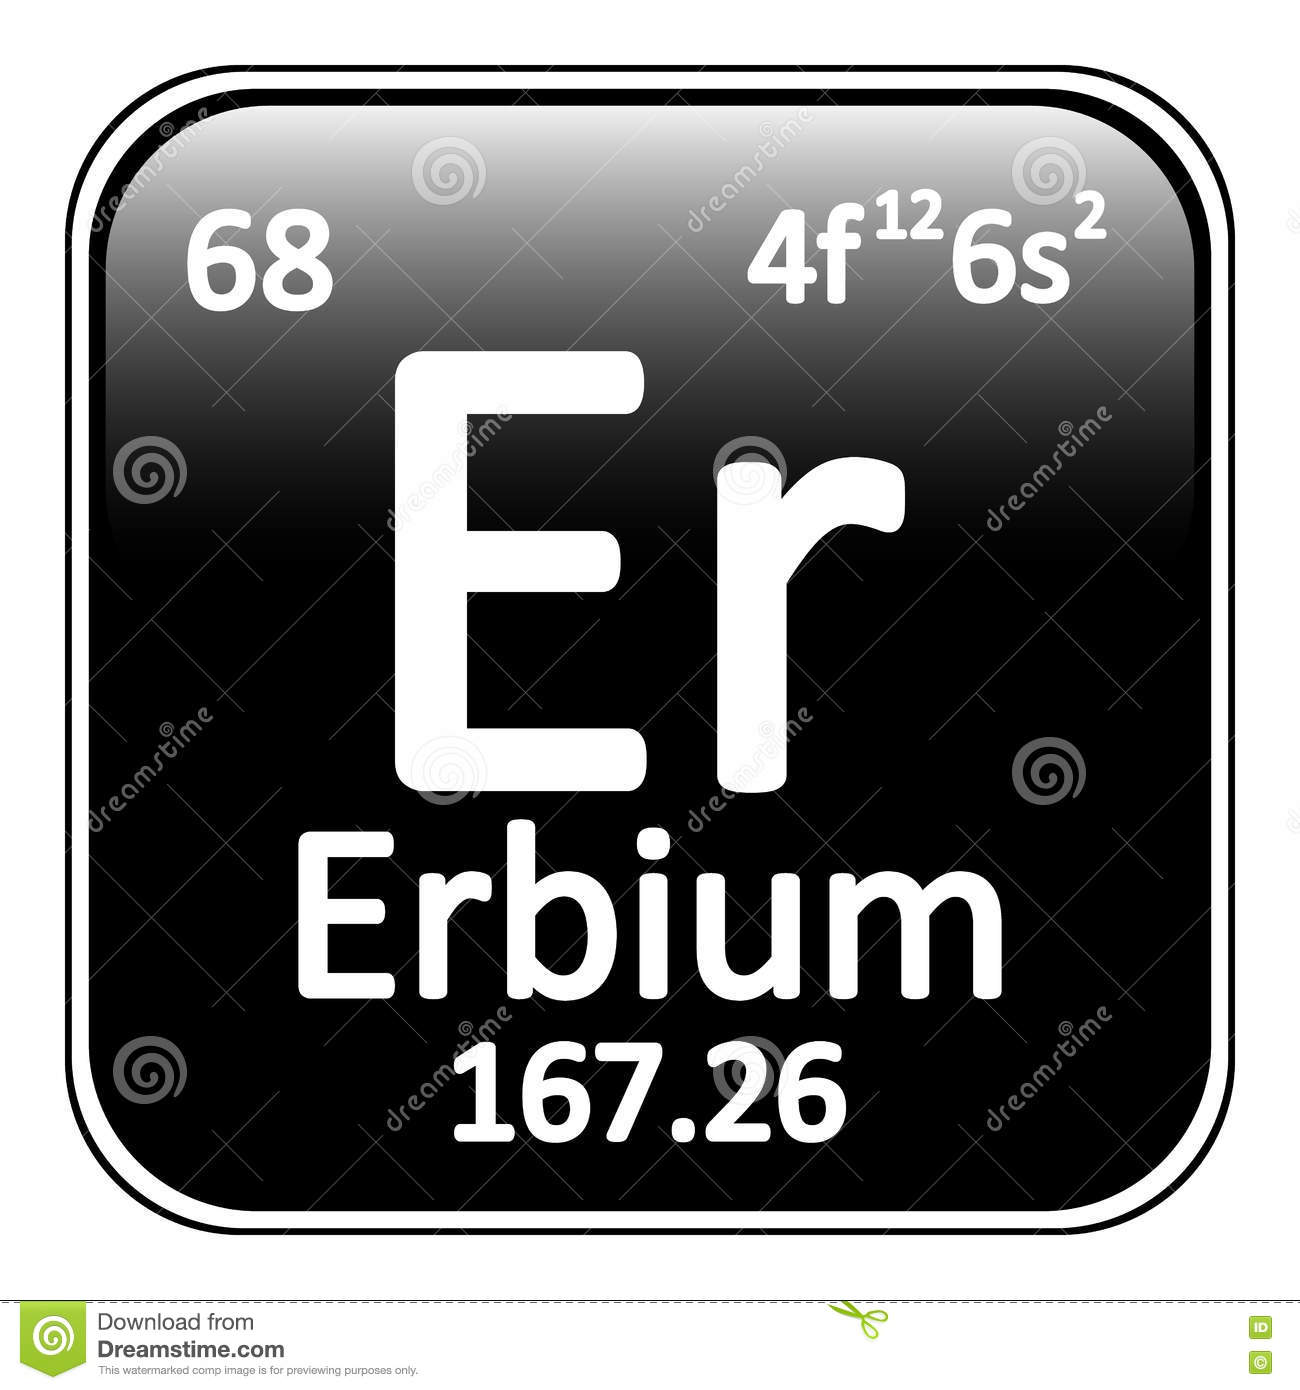 Periodic table element erbium icon stock illustration image royalty free illustration download periodic table element gamestrikefo Choice Image